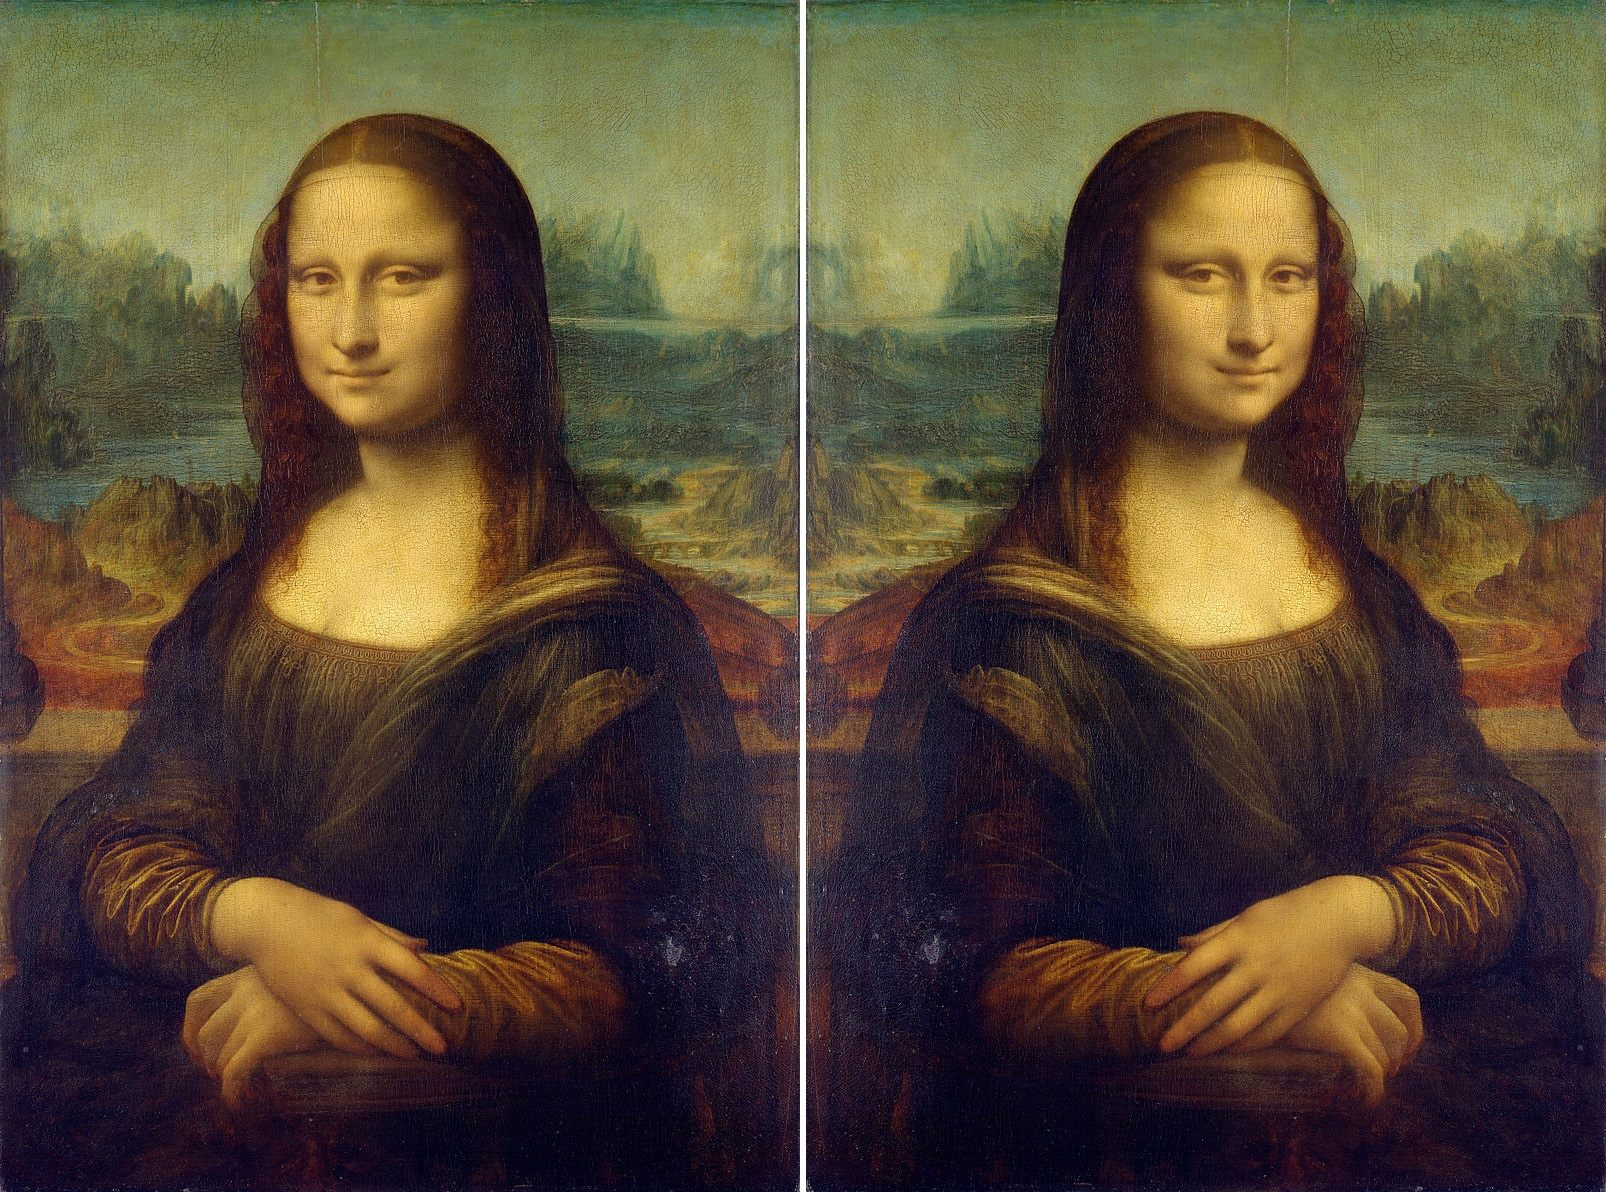 The original Mona Lisa, and flipped side by side.